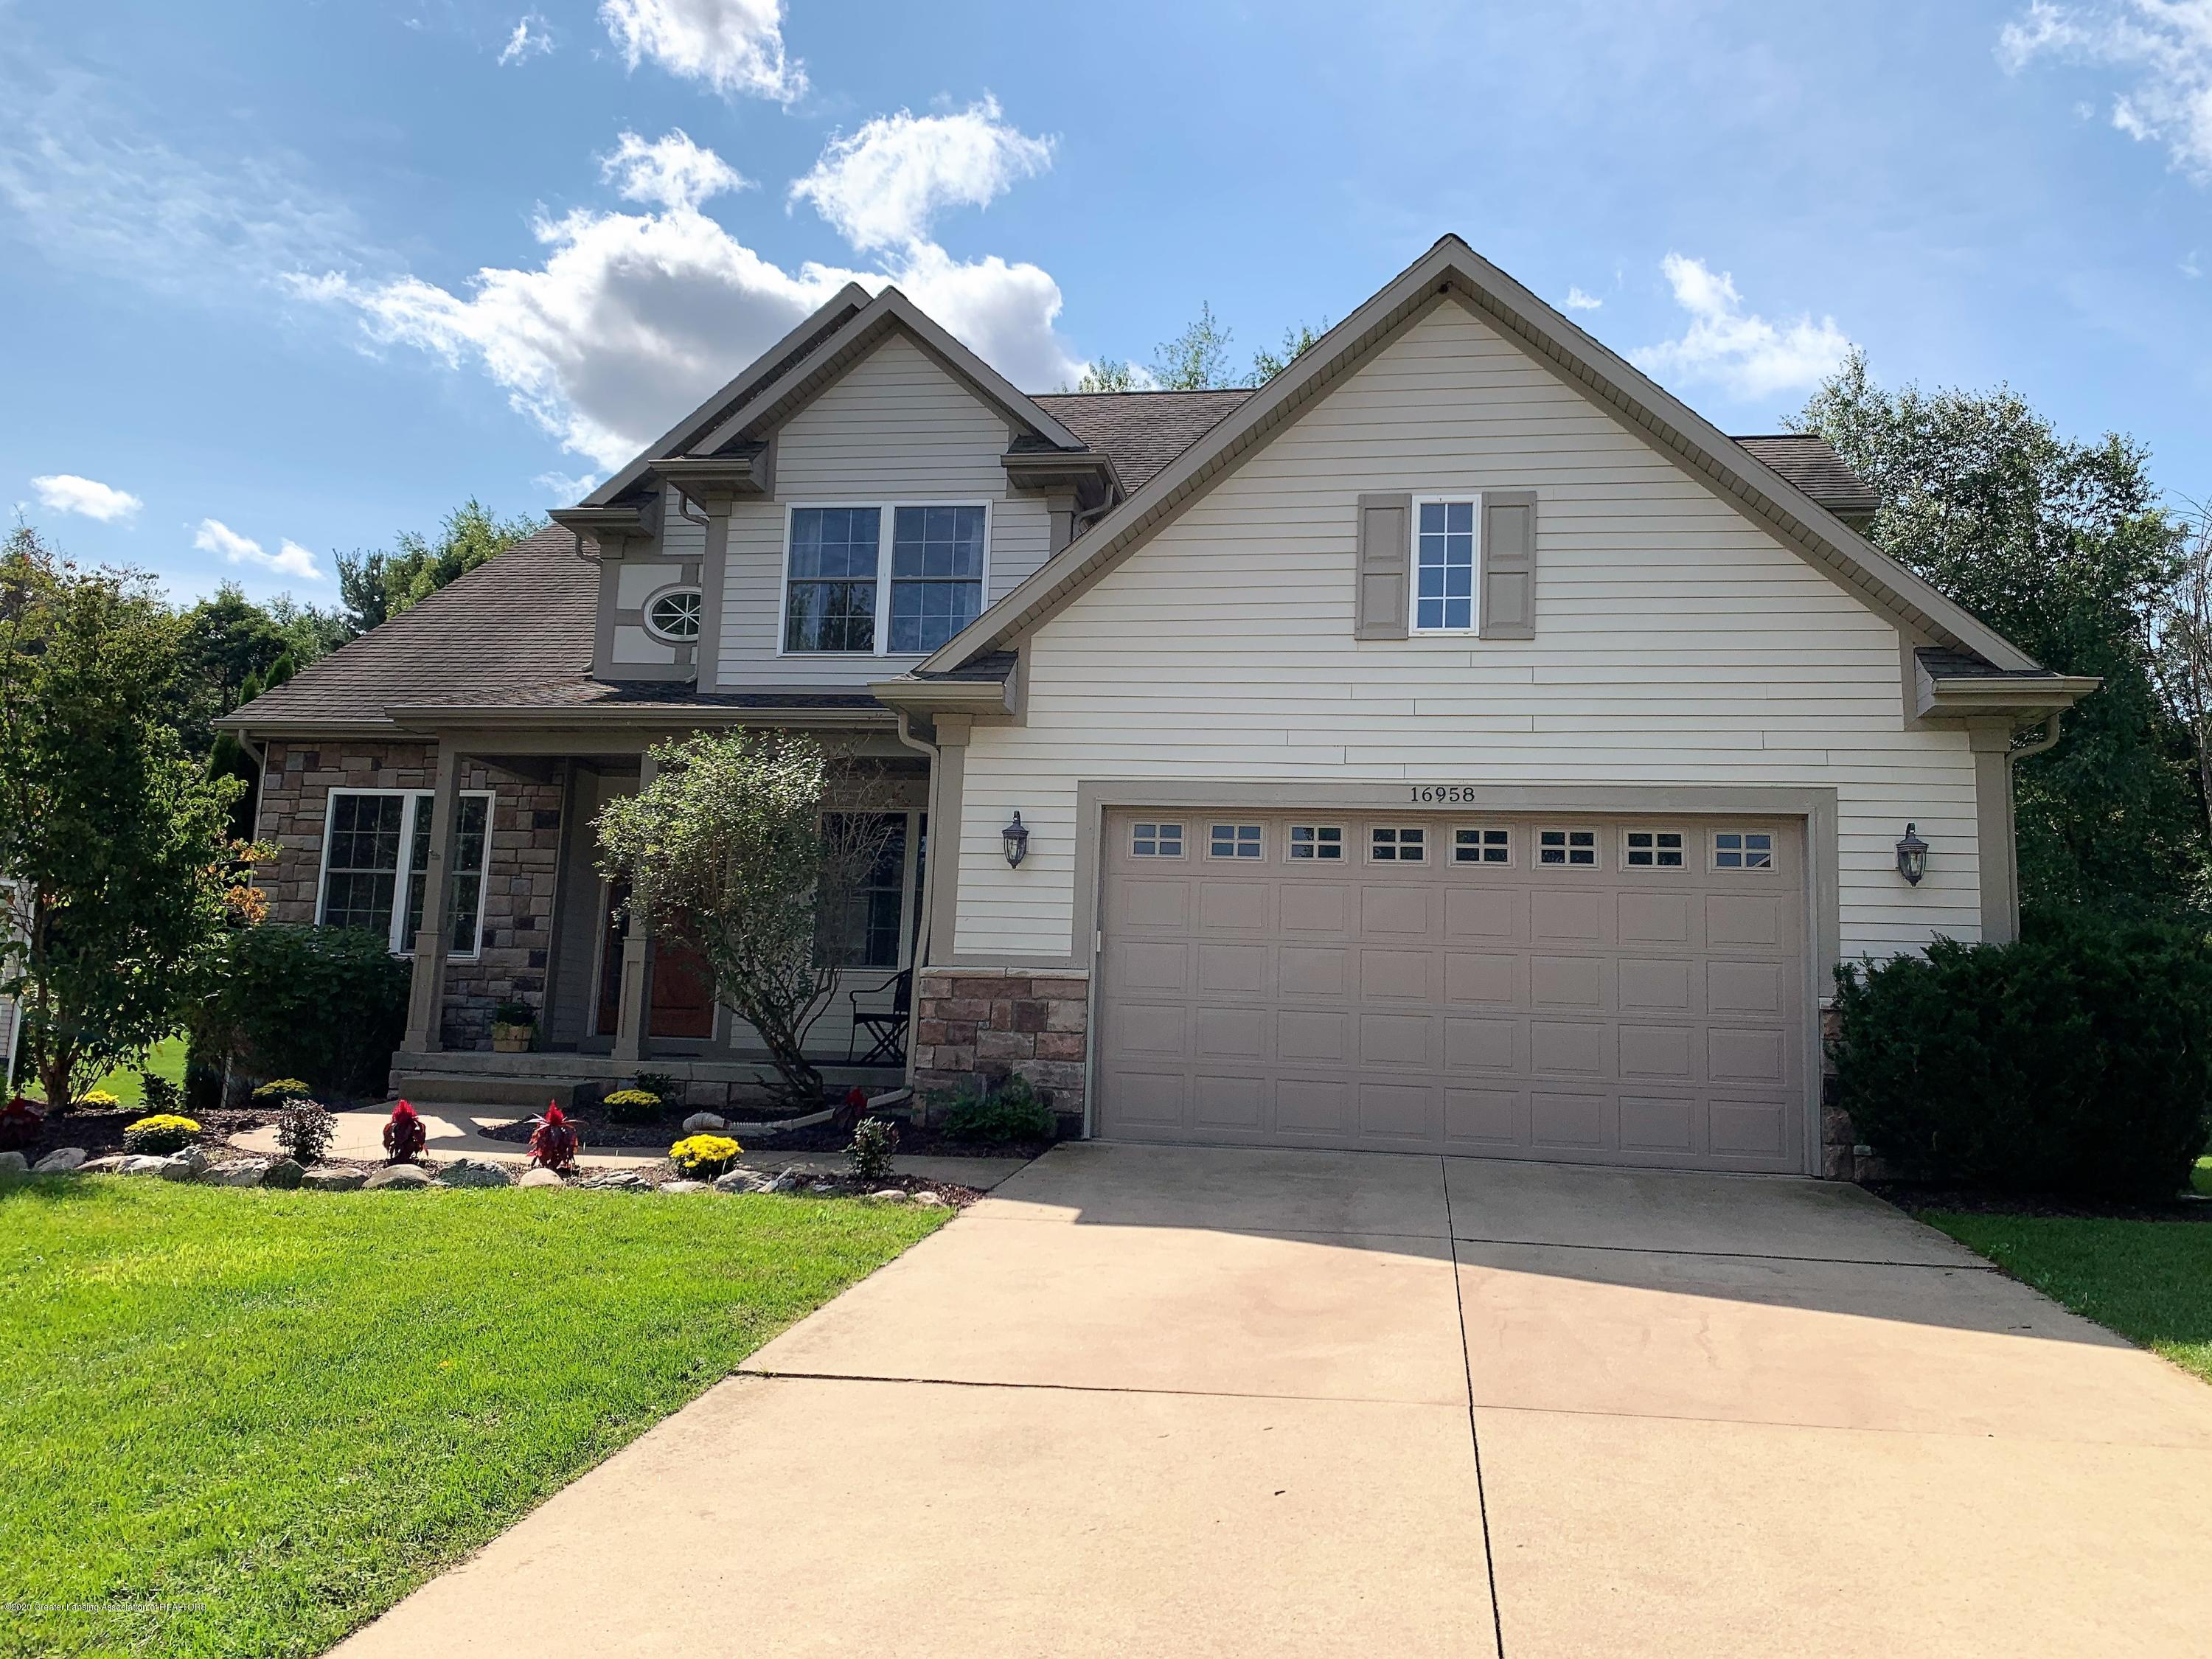 16958 Broadview Dr - IMG_4367 - 3